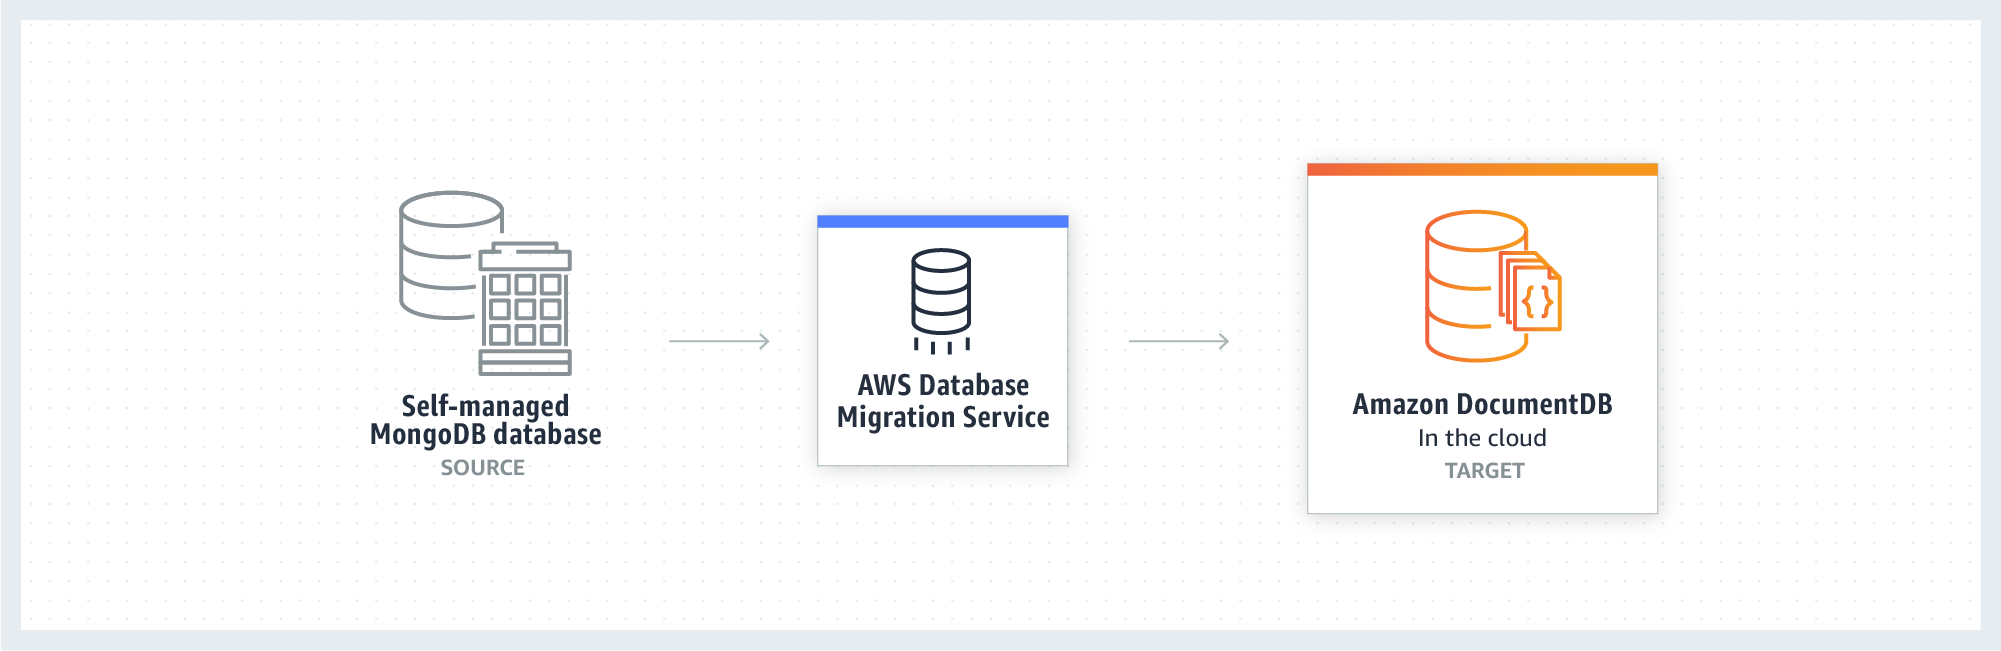 diagramma che descrive il caso d'uso di migrazione di database